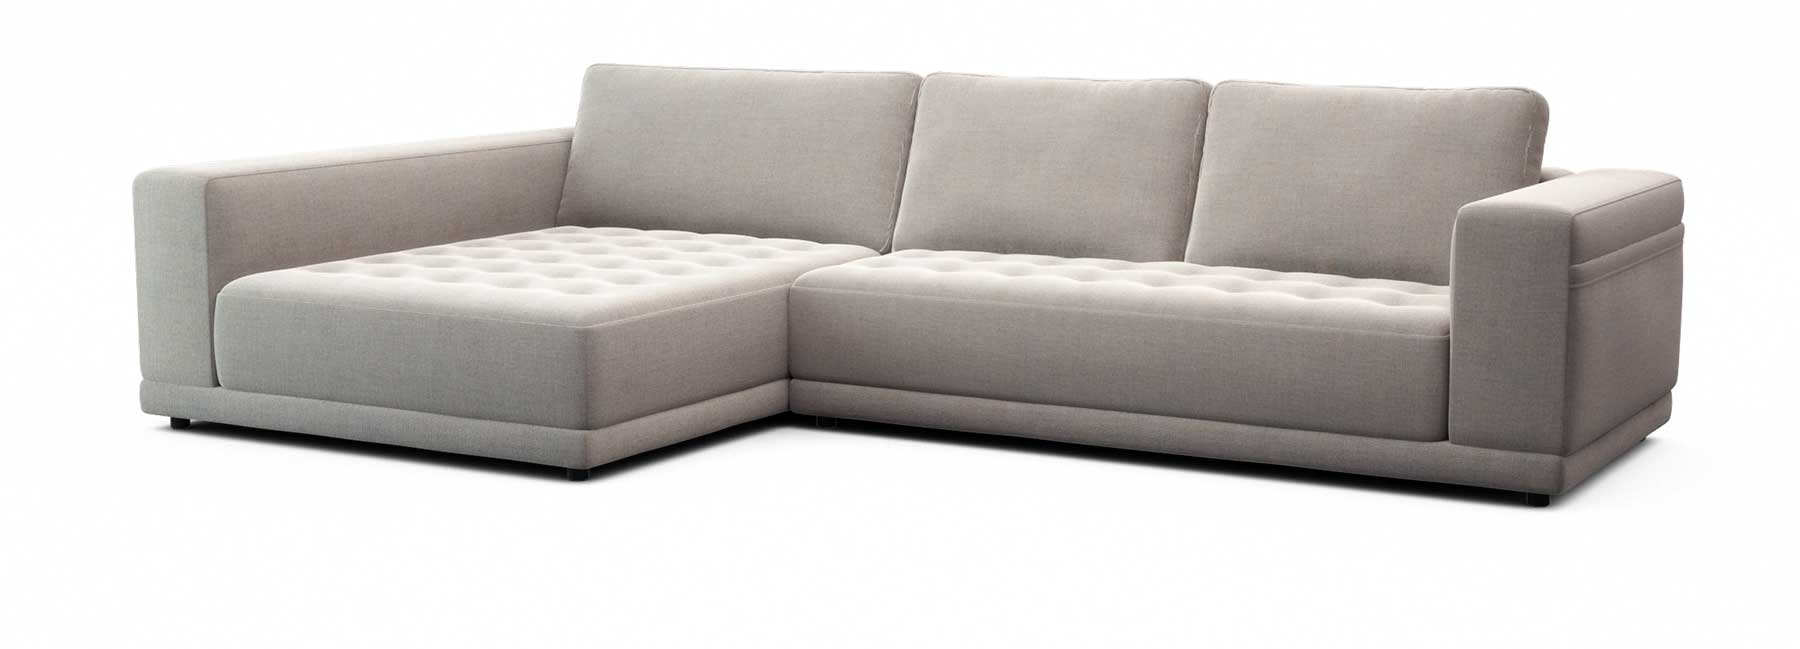 Couches For Sale Brisbane Felix Modular Sofa Deep Seat Comfort Tufted Seat Lounge